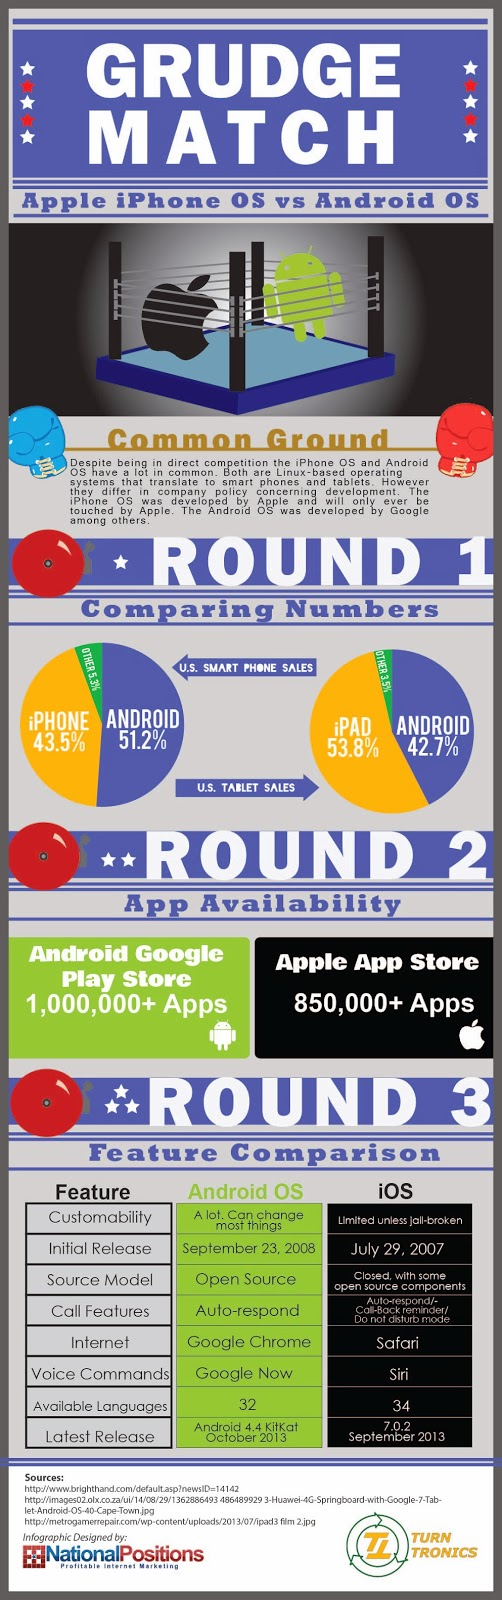 http://turntronics.com/wp-content/uploads/2014/01/iphone-os-vs-android-os.lrg_.jpg